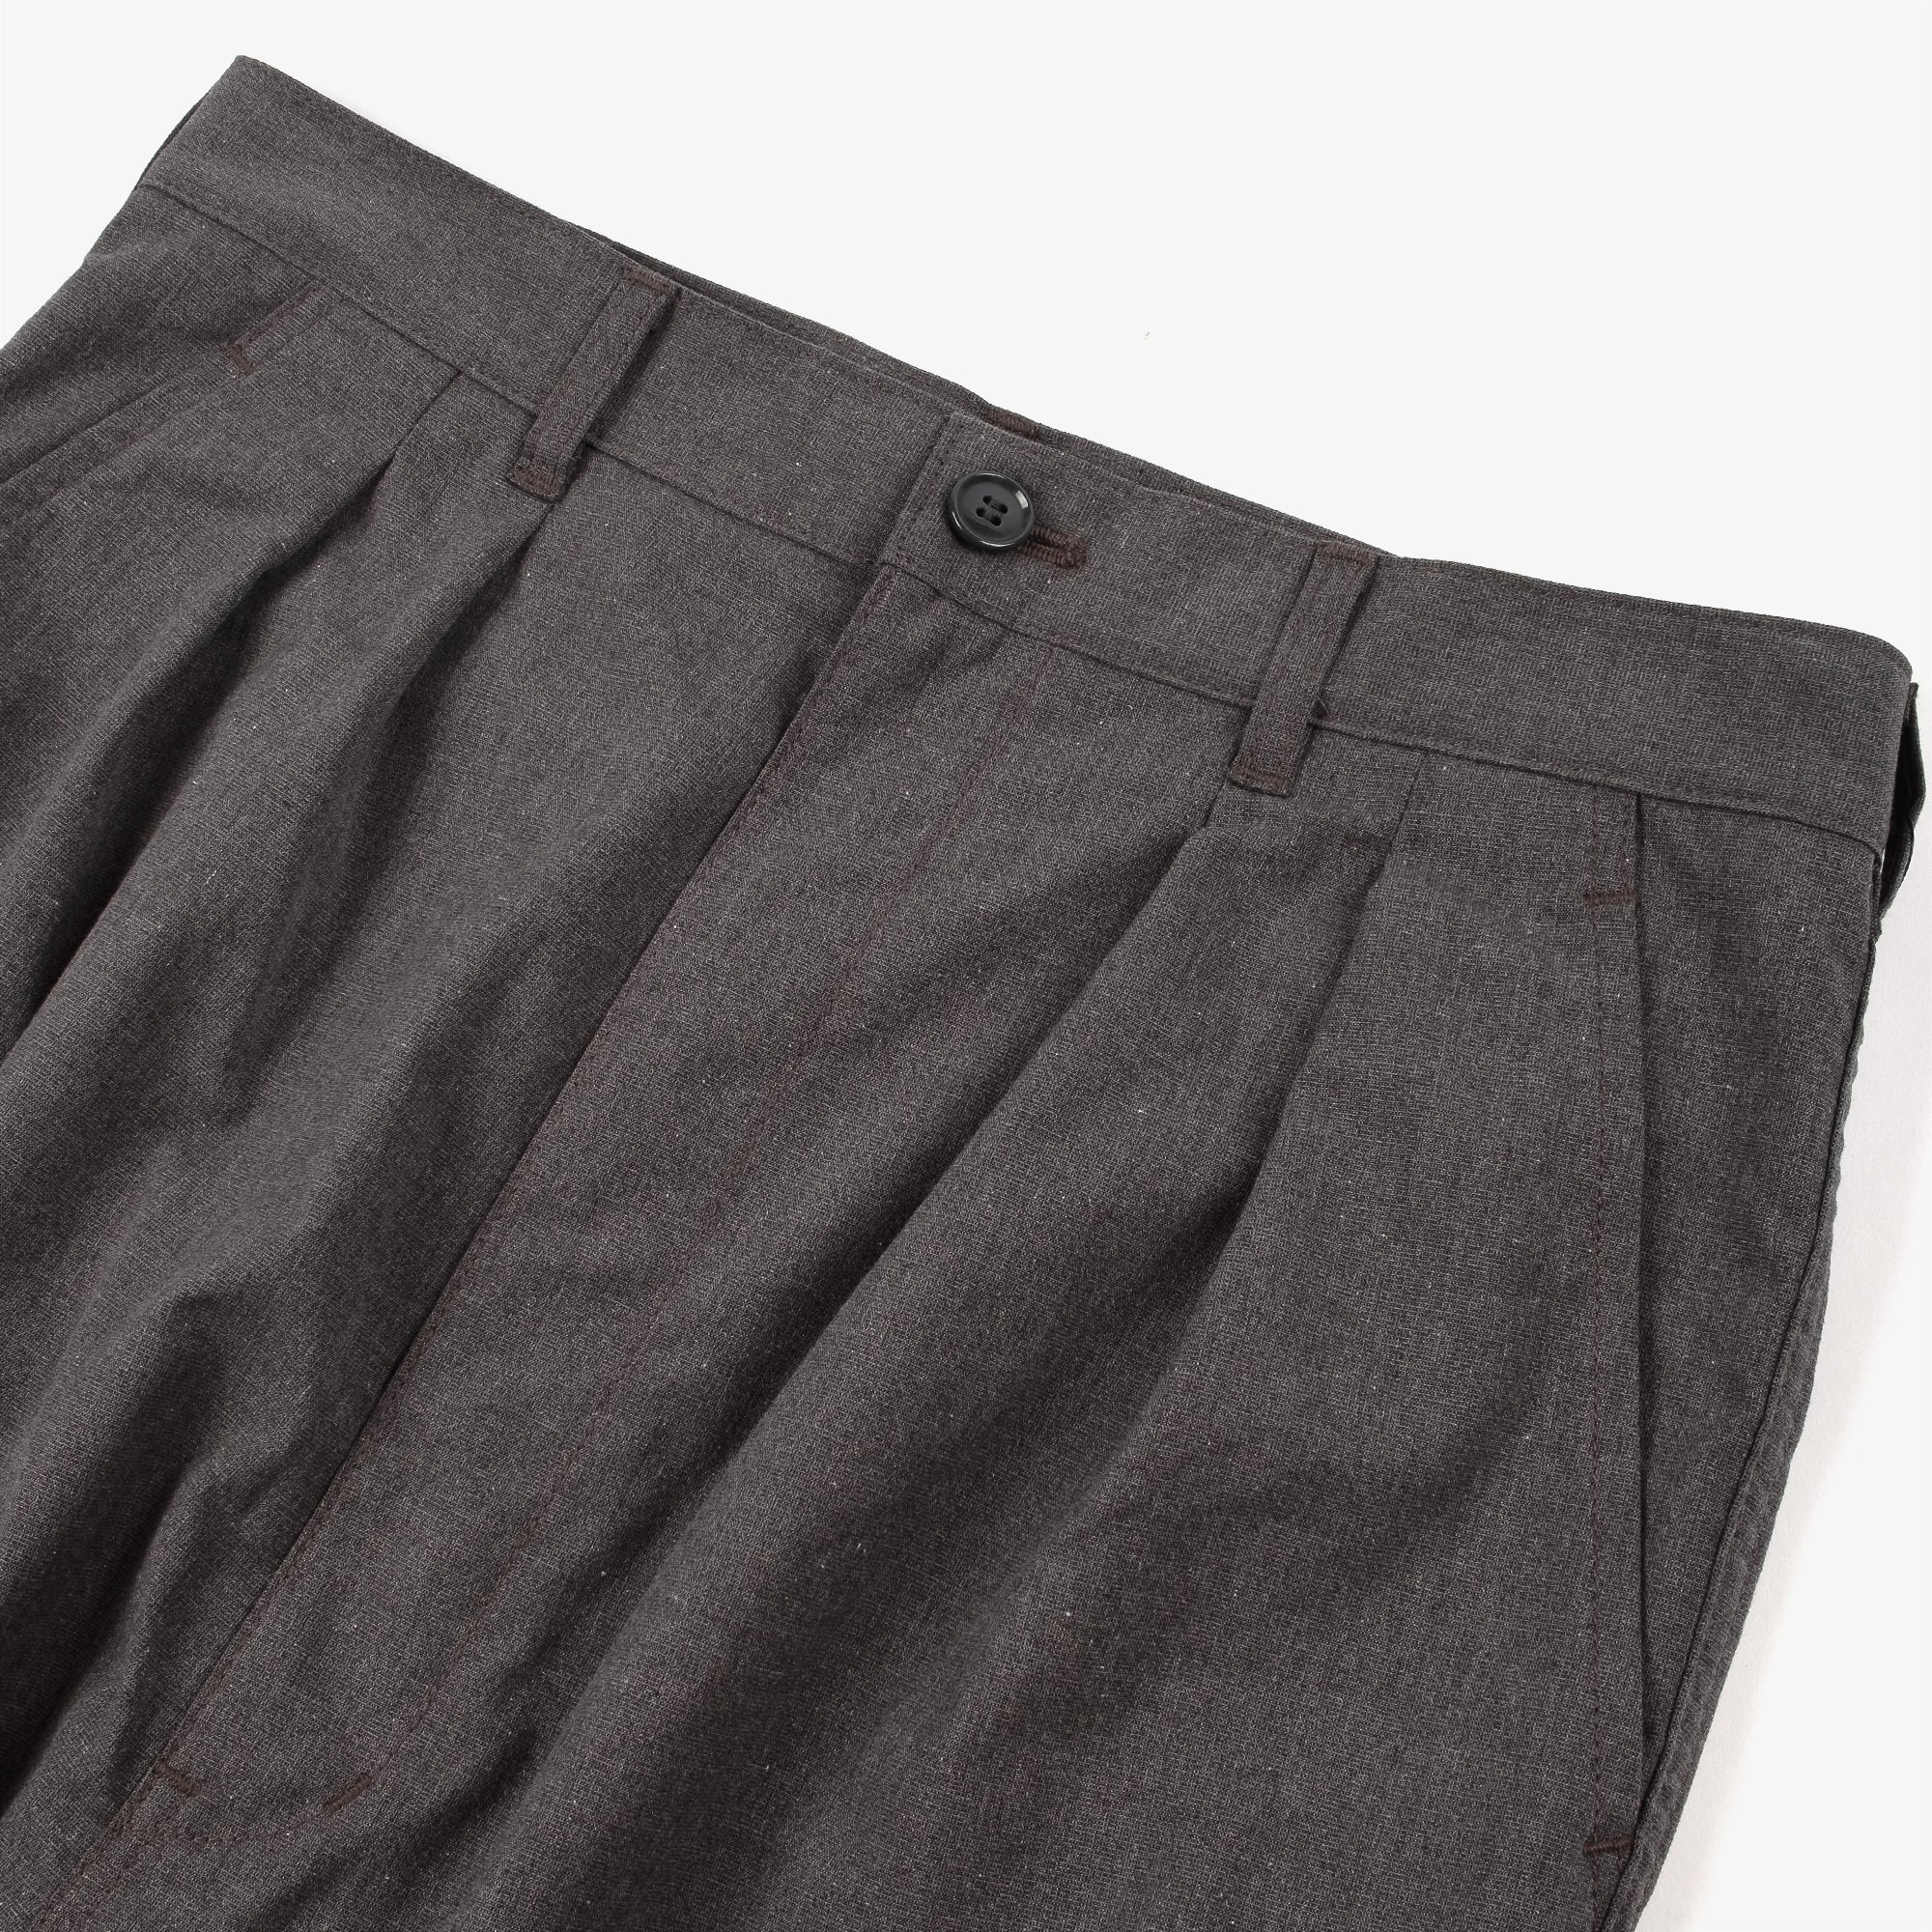 Comme des Garçons - Homme Two Tuck Wide Pleat Trousers - Grey 3